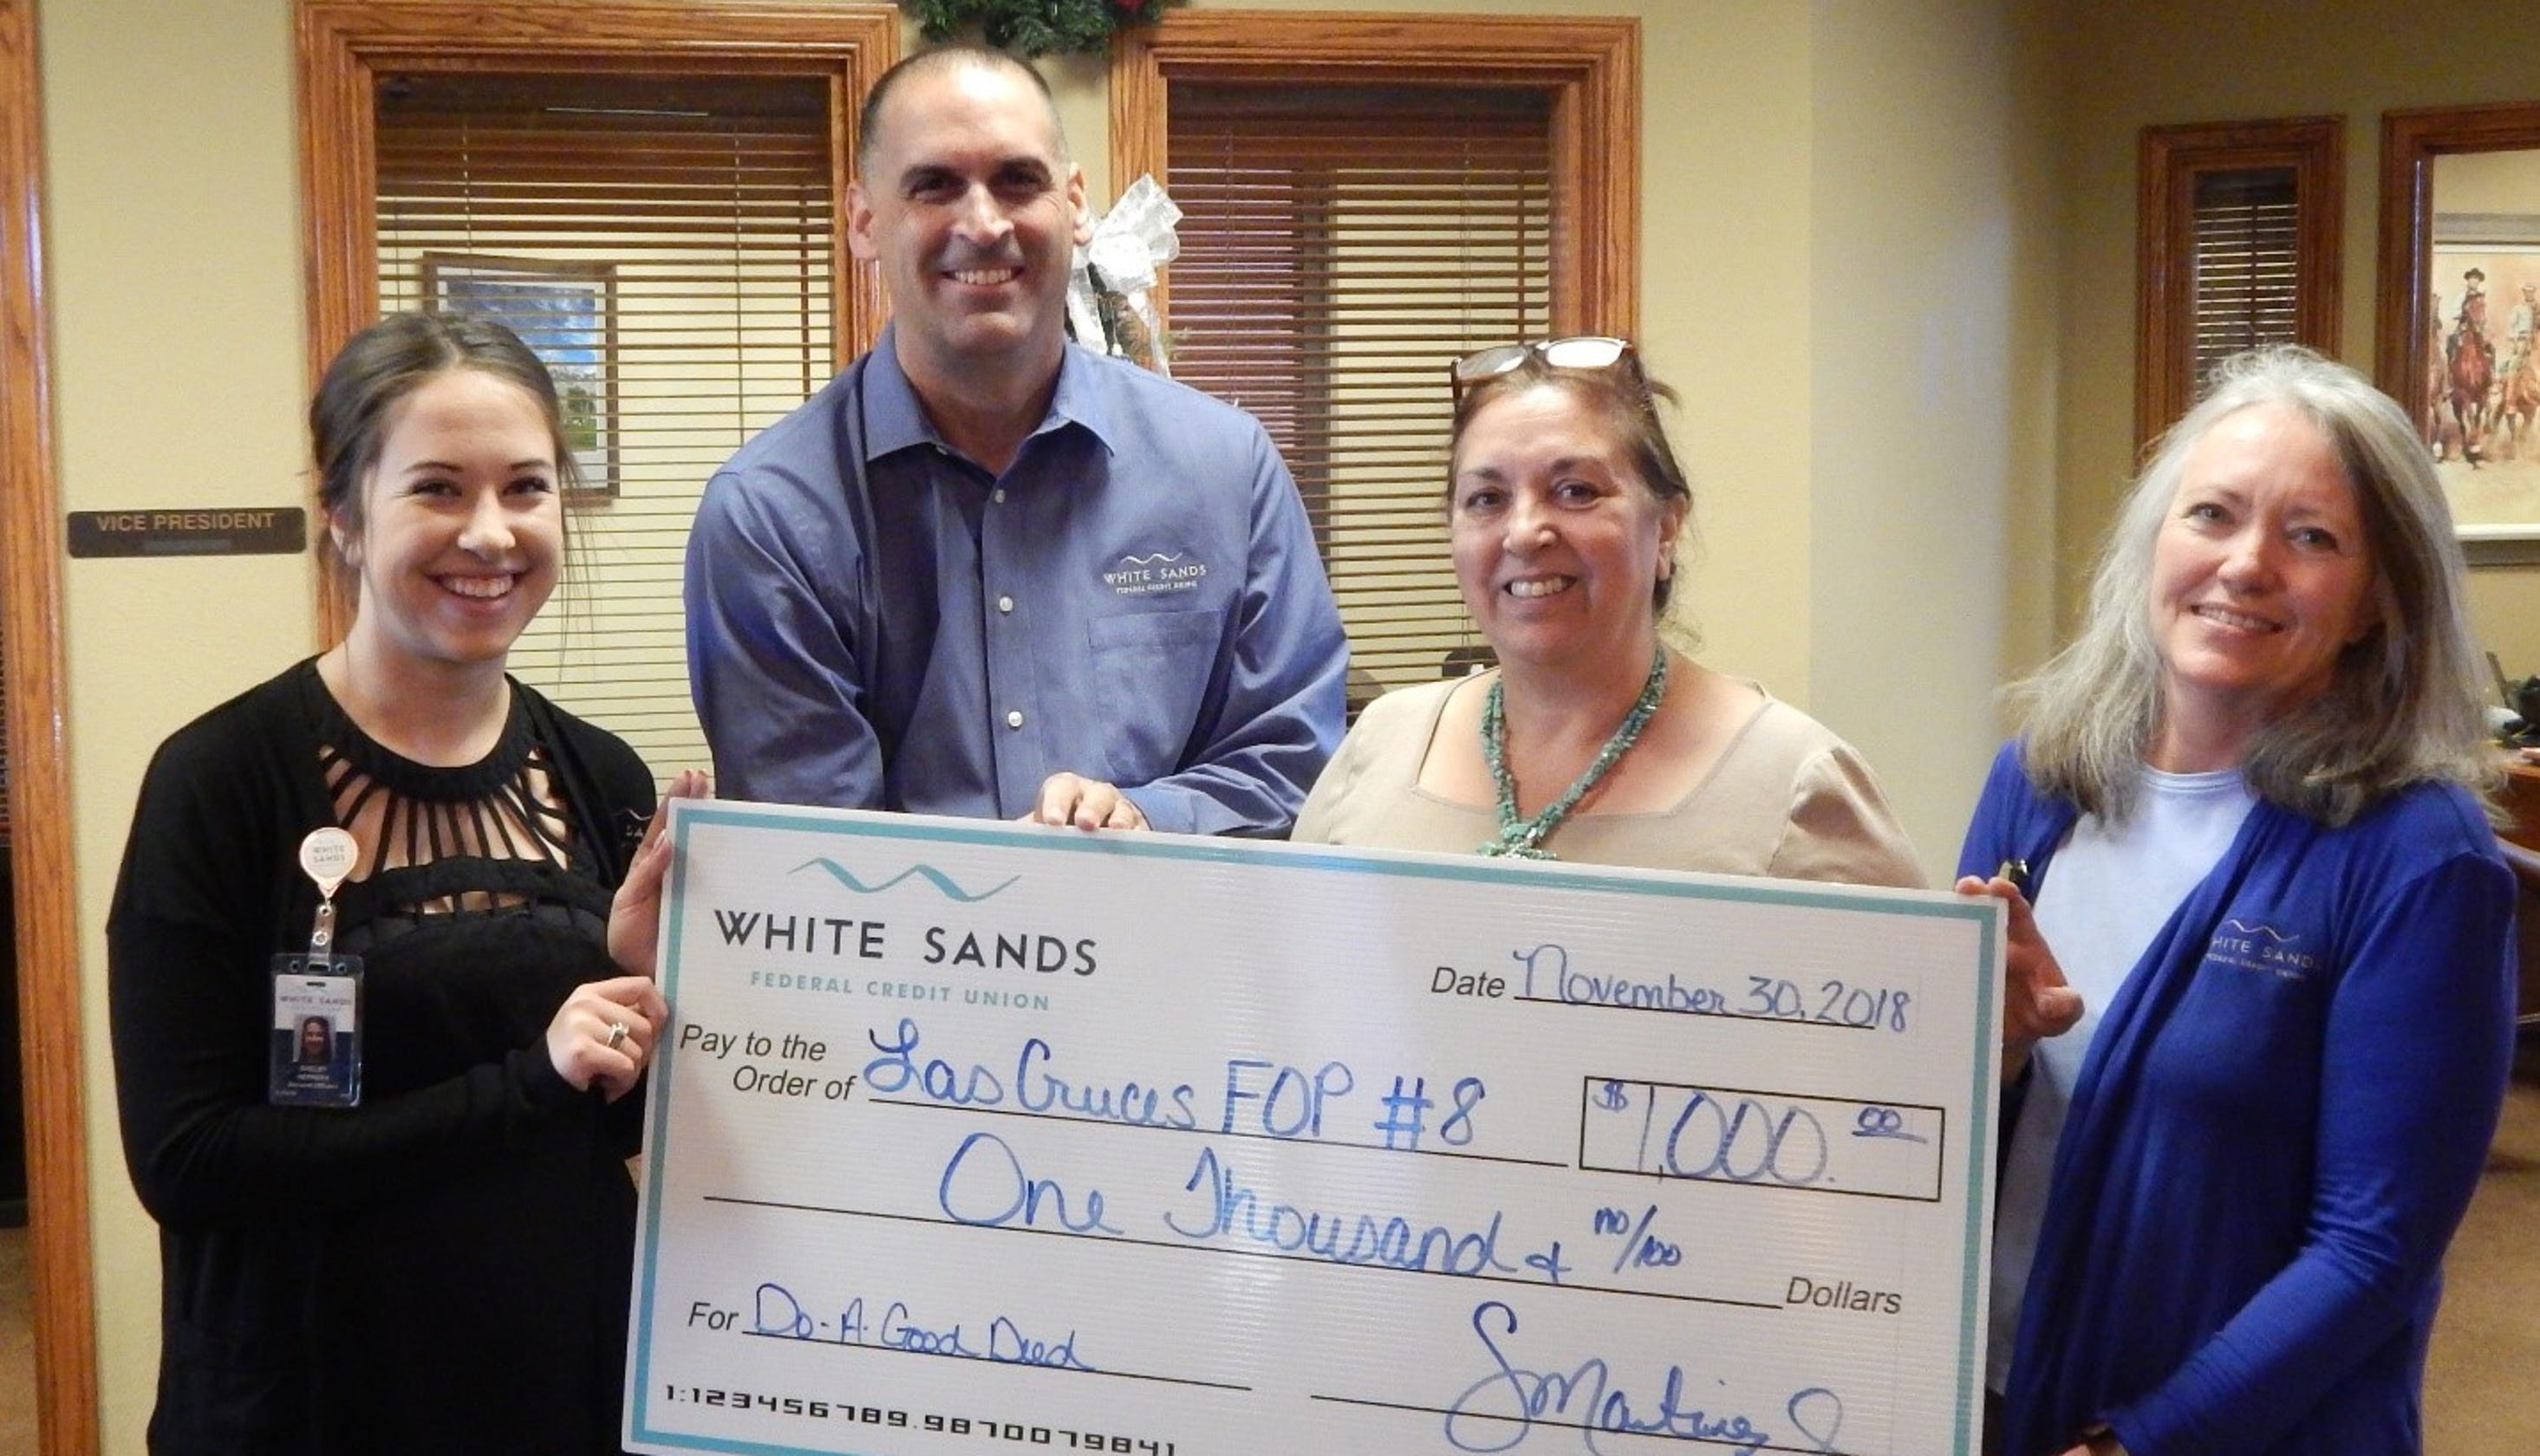 White Sands Fcu Donate 1 000 To Police Shop With A Cop Program